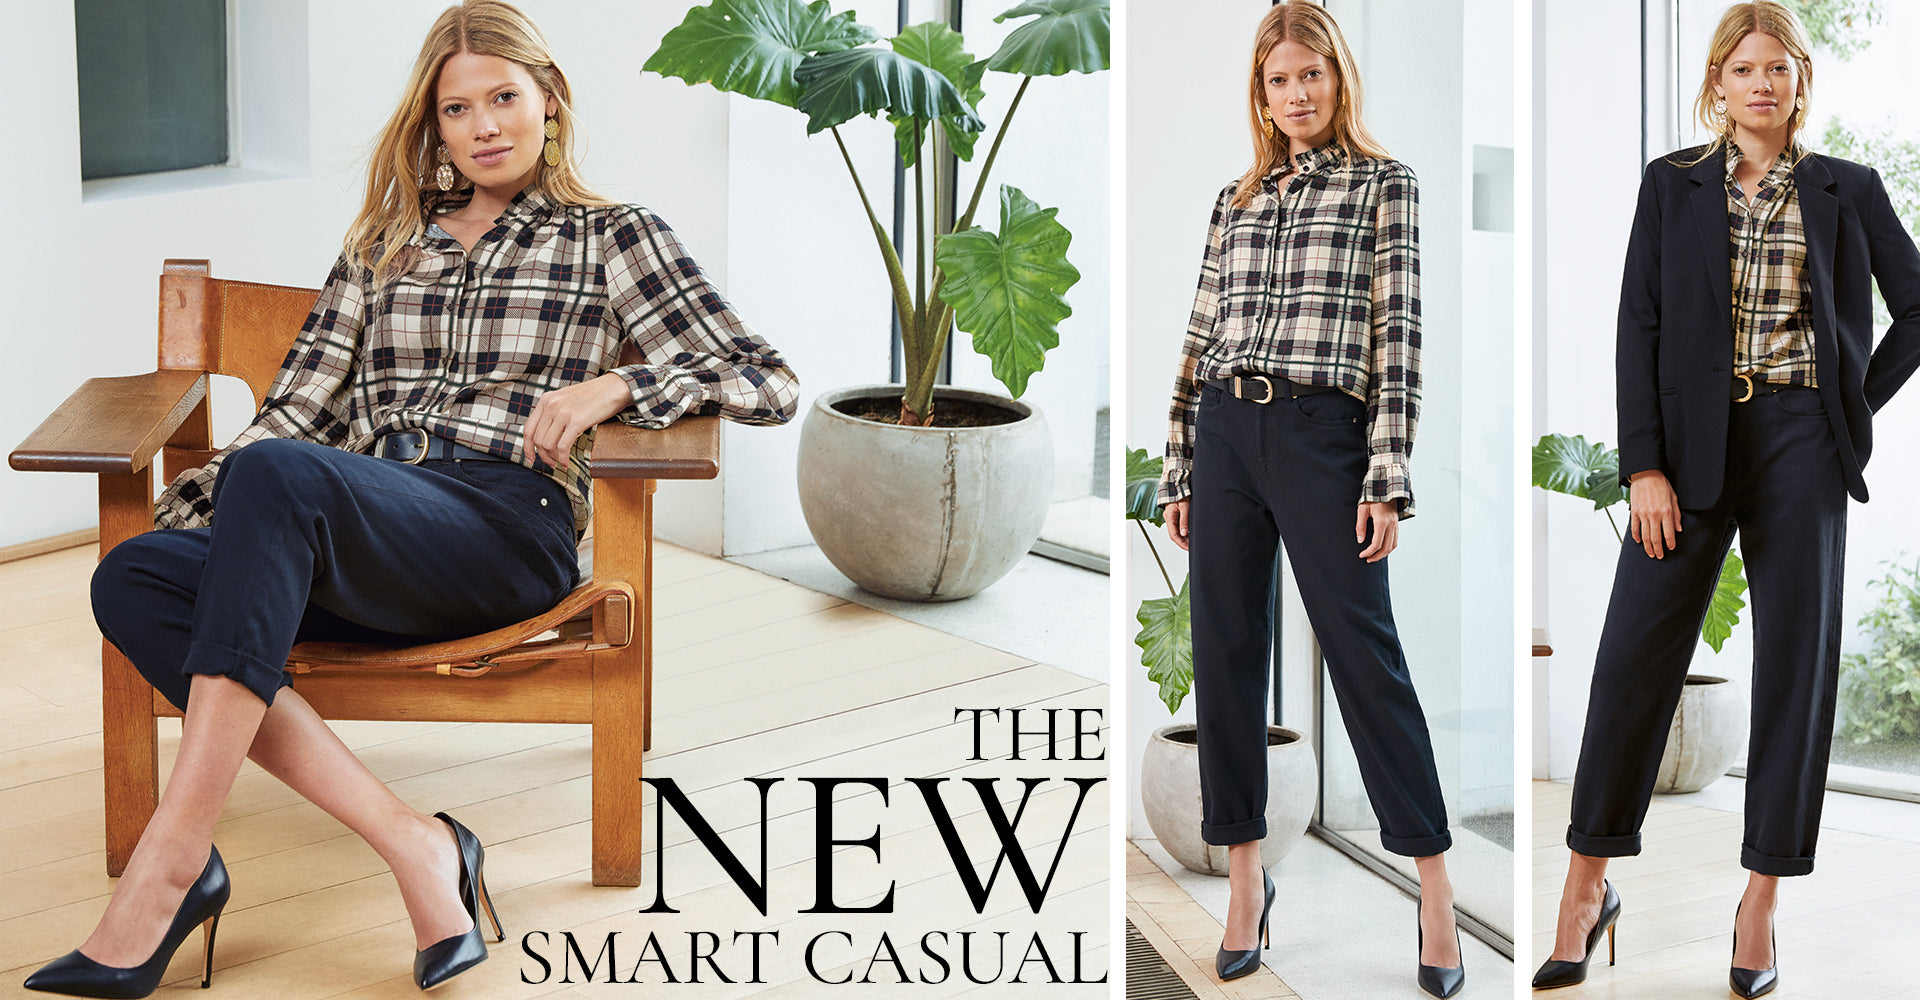 The new smart casual